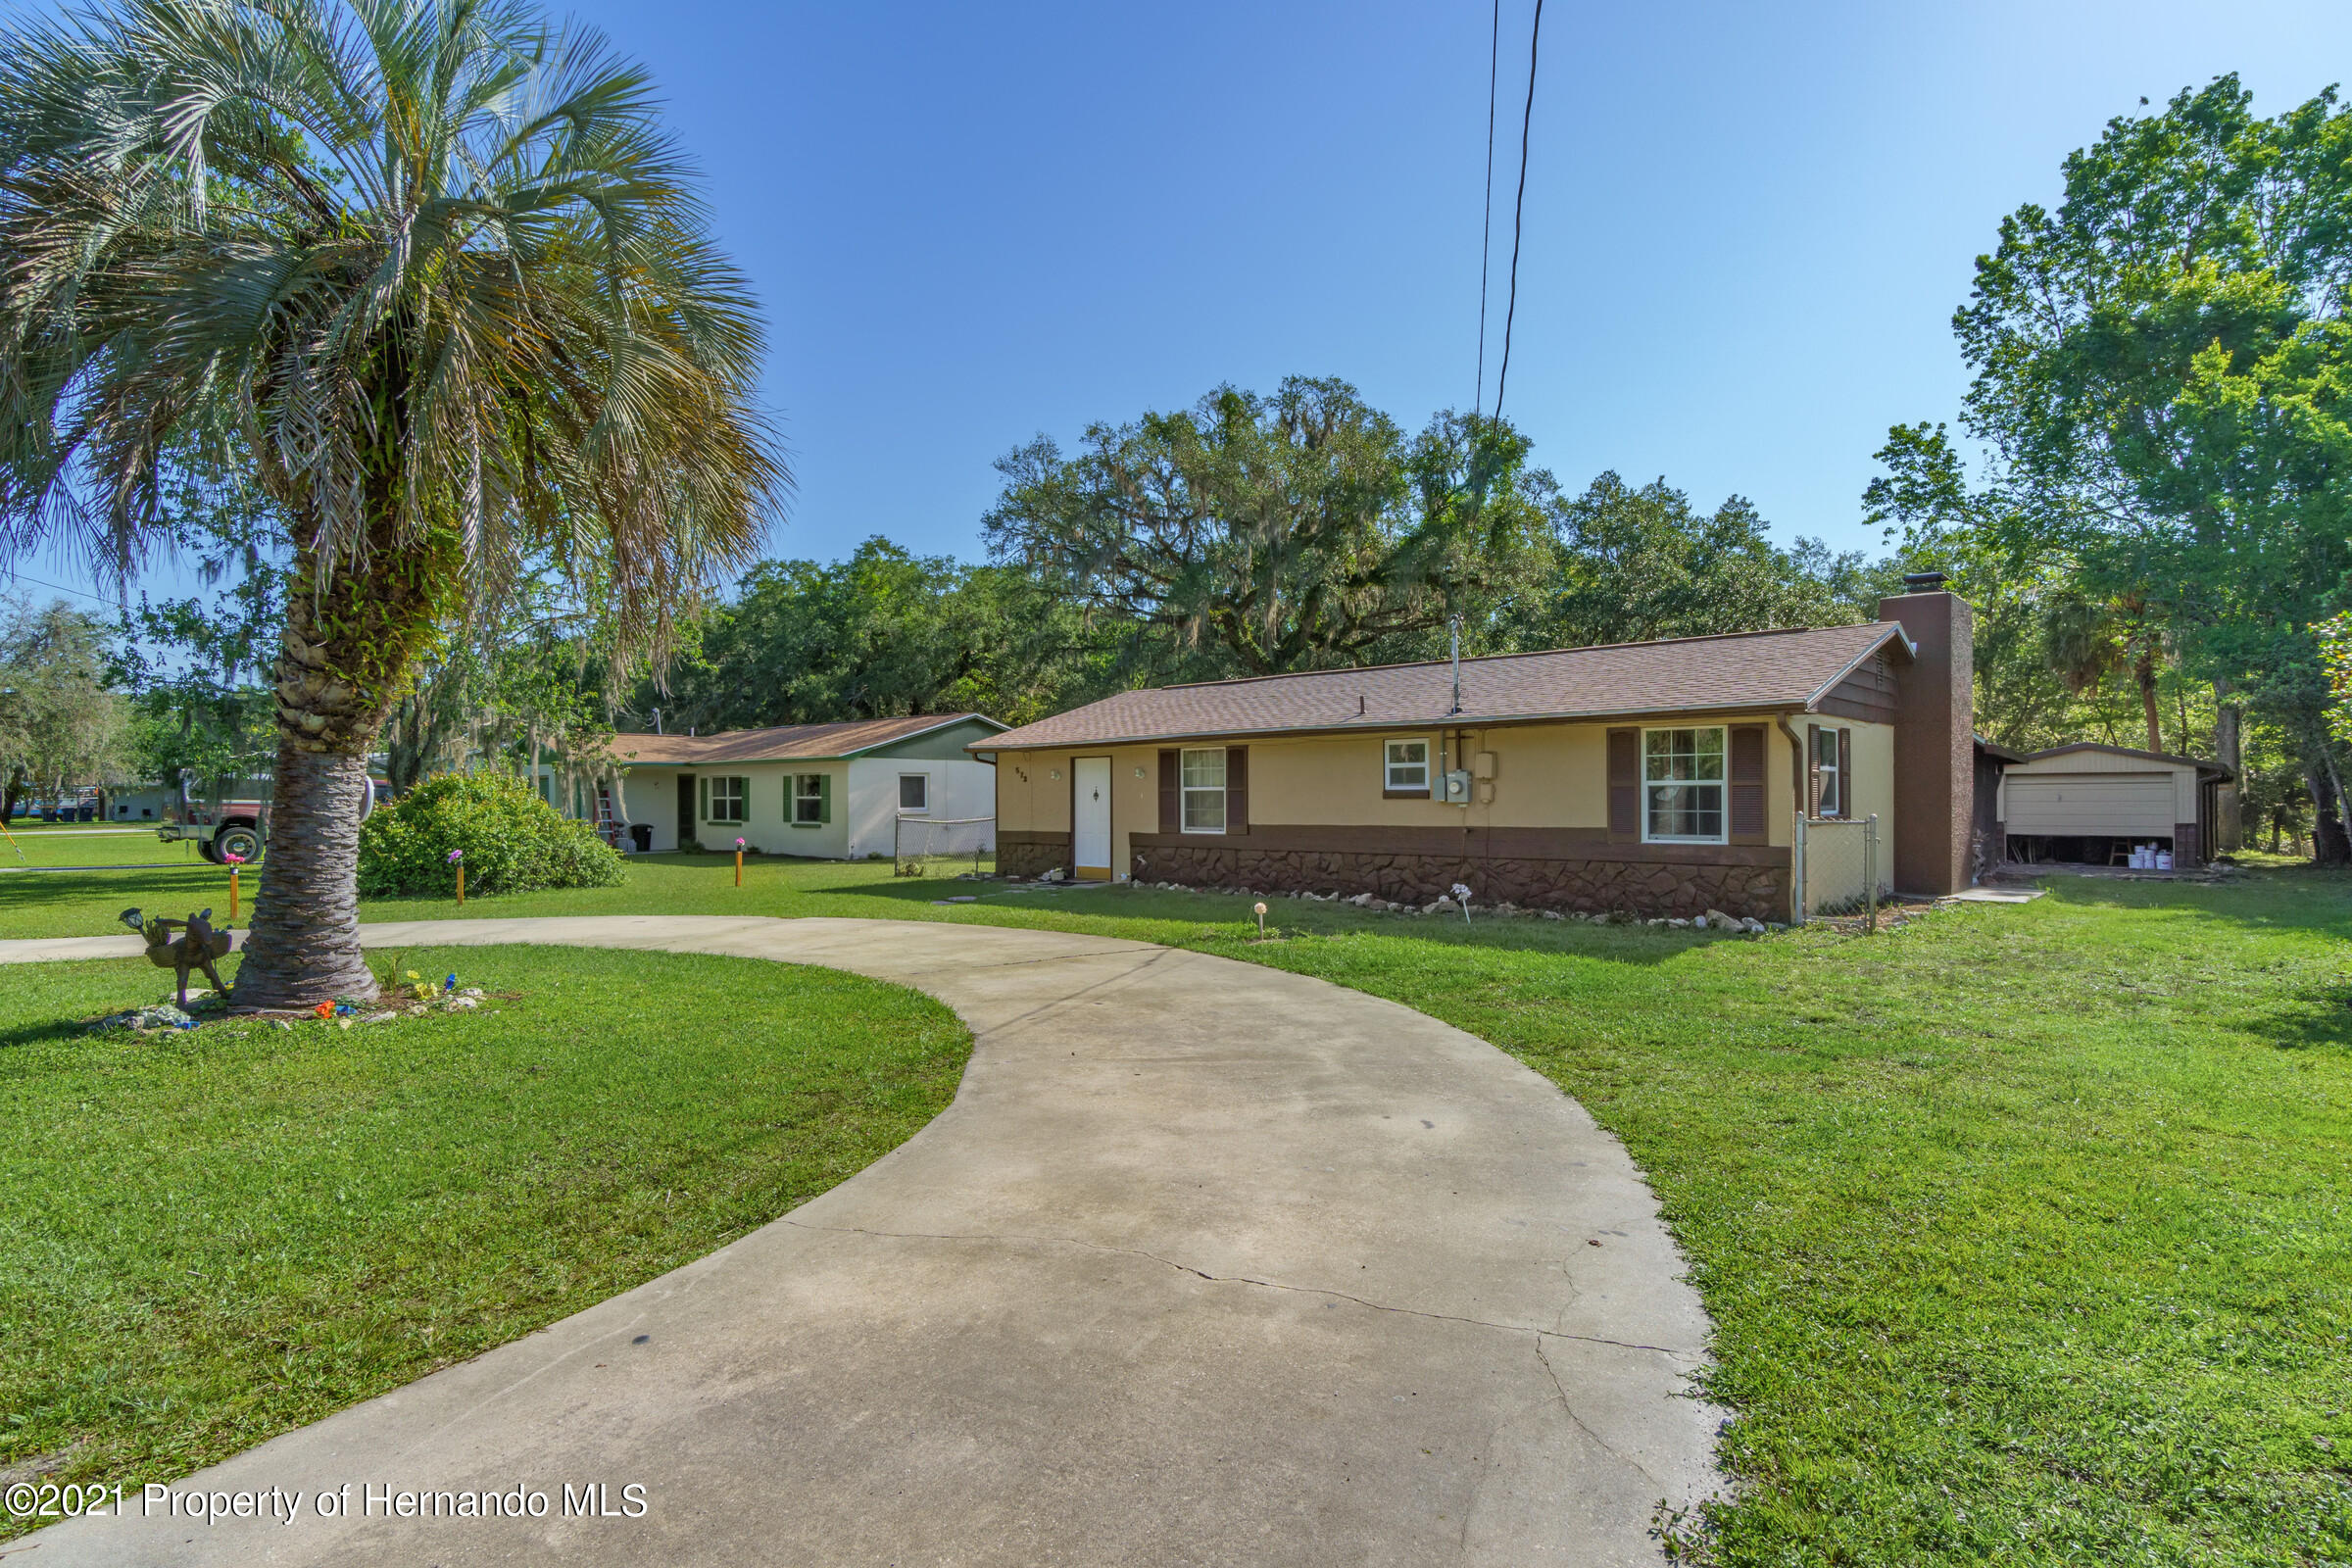 Details for 573 S Little John Avenue, Inverness, FL 34450